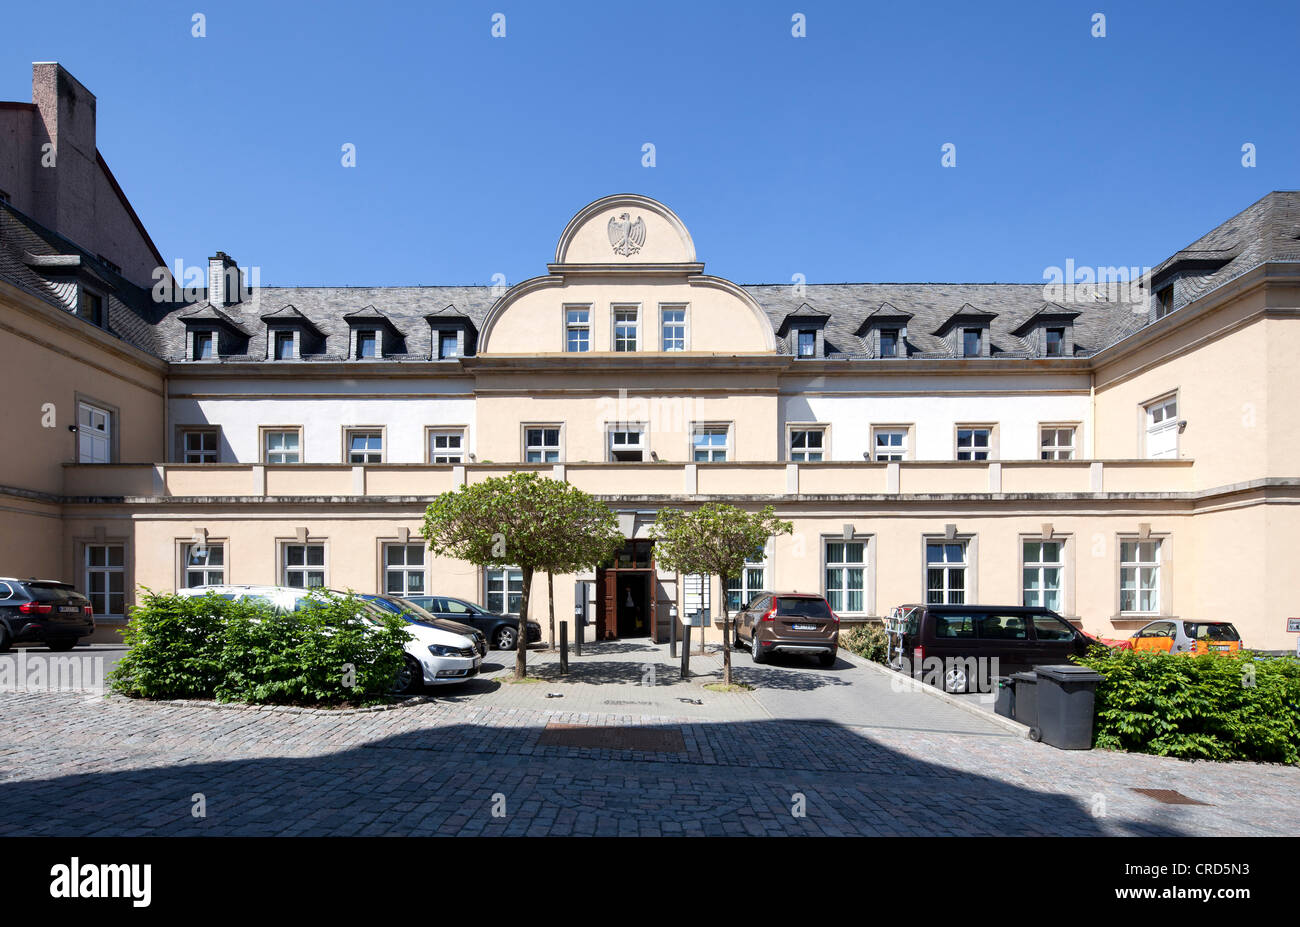 Palace of the President of the Court of Appeal, Wetzlar, Hesse, Germany, Europe, PublicGround - Stock Image